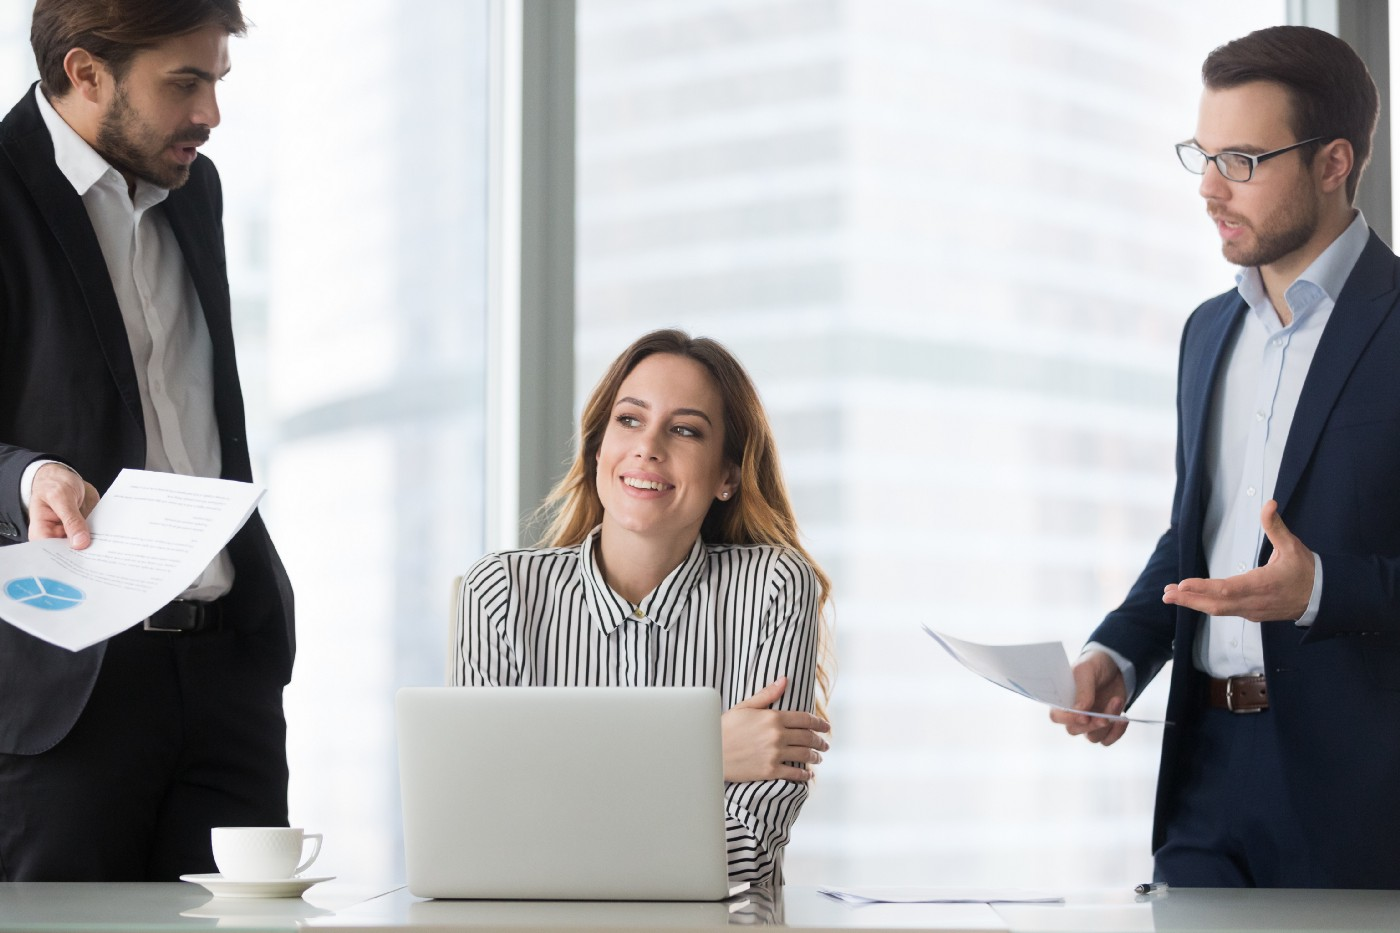 A businesswoman smiles awkwardly and looks away as two of her colleagues are bothering her with questions at her desk.